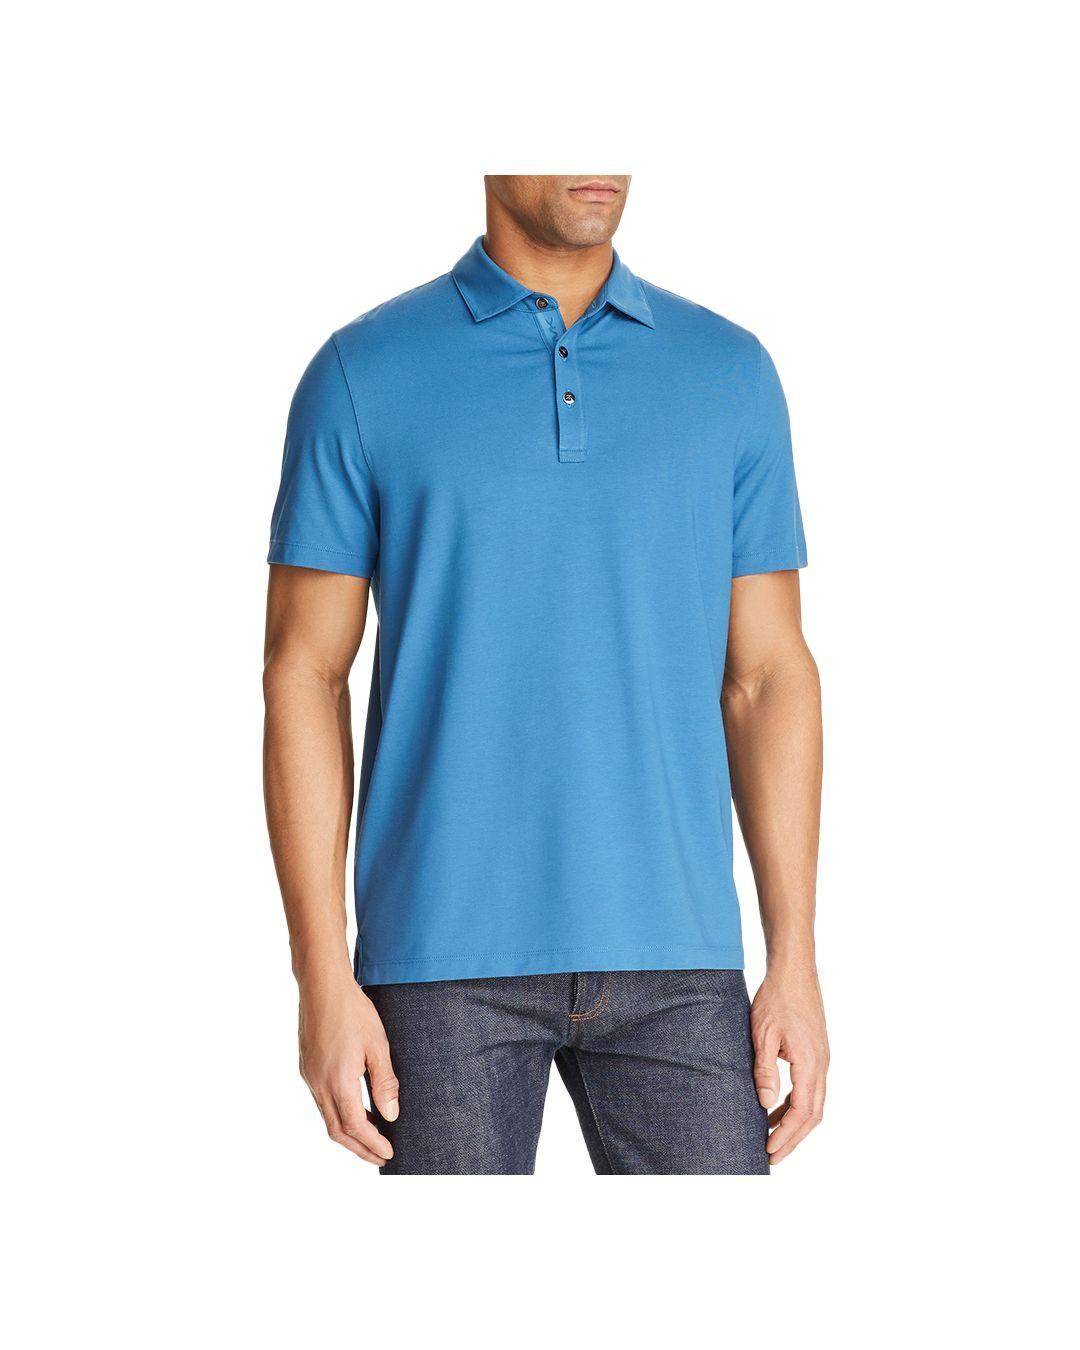 5603427c Lyst - Michael Kors Bryant Classic Fit Polo Shirt in Blue for Men